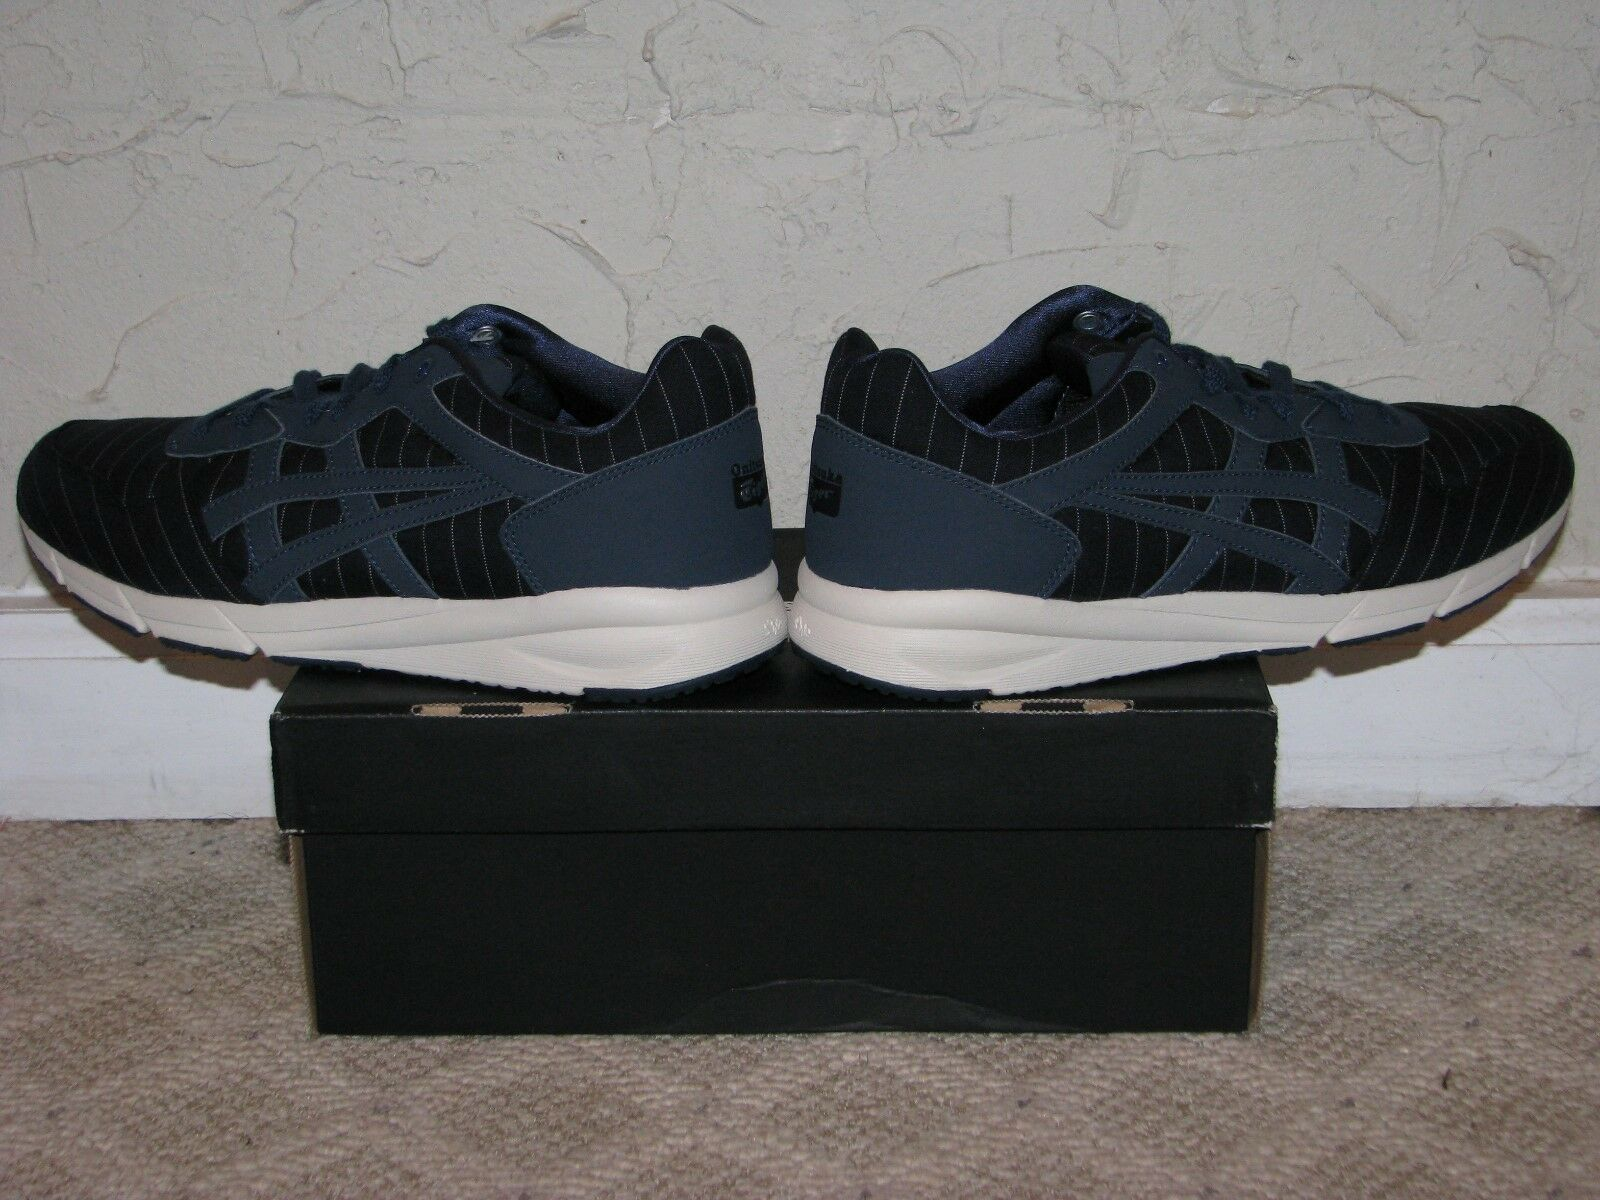 SNS x Onitsuka Tiger Shaw Runner Tailor Pack Uomo Uomo Uomo Dimensione 9.5 DS NEW  D42QQ-5050 3f74ac